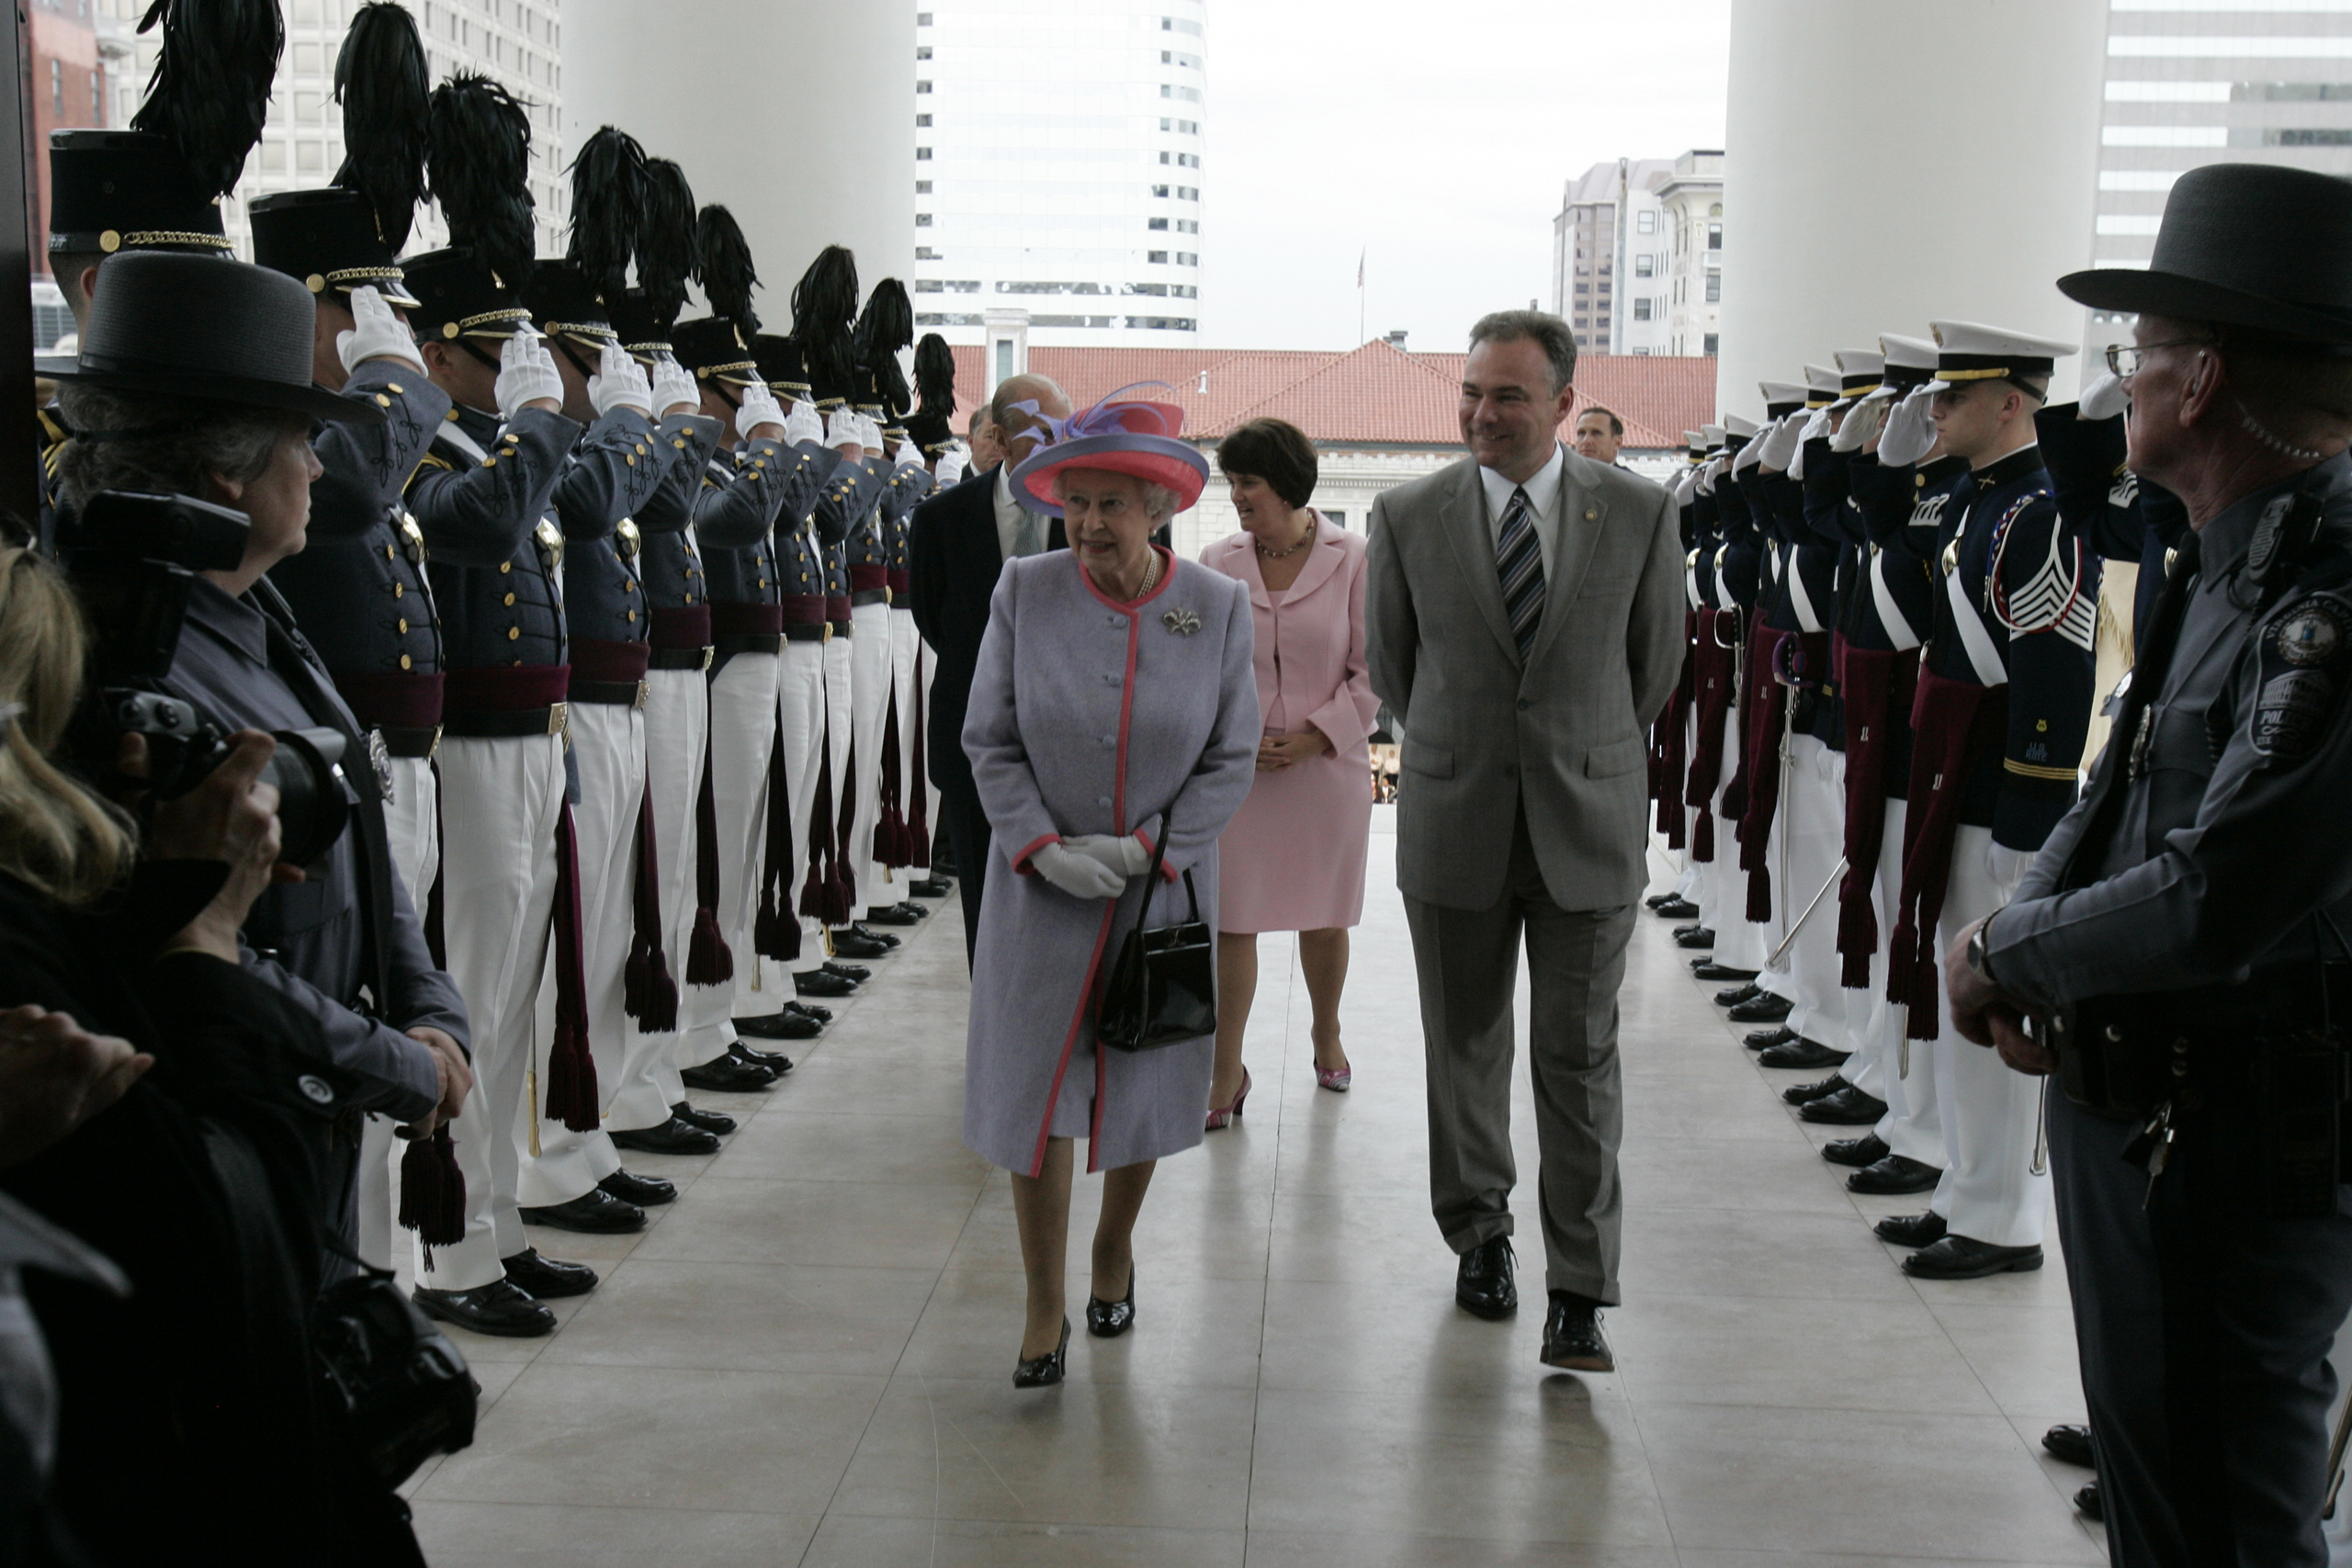 Members of the Virginia Military Institute Corps of Cadets, left, and the Virginia Tech Corps of Cadets, right, salute as Queen Elizabeth II and Virginia Gov. Tim Kaine enter the Virginia State Capitol in Richmond, on May 3, 2007.